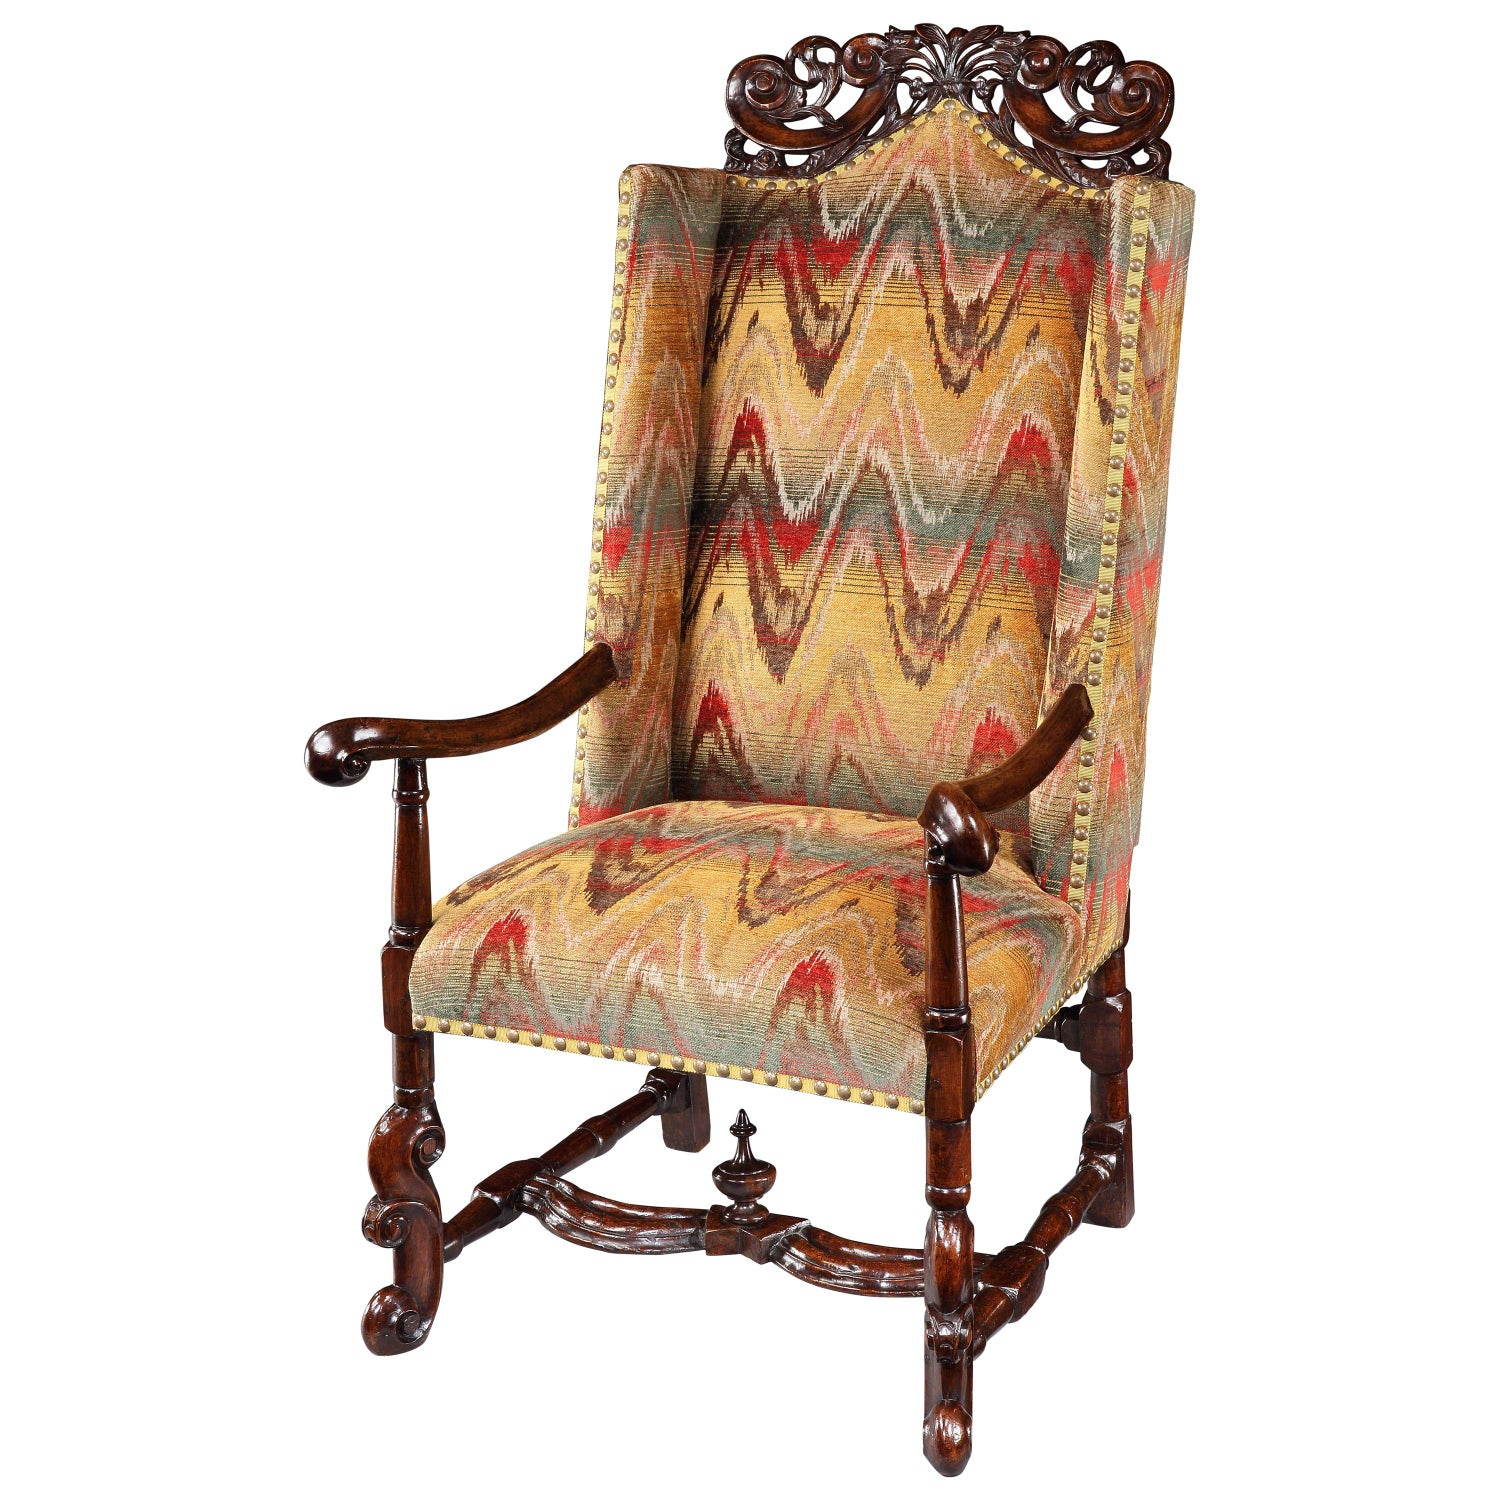 Armchair Wing Sleeping Walnut Upholstered Bargello Cresting Baroque H-Stretcher